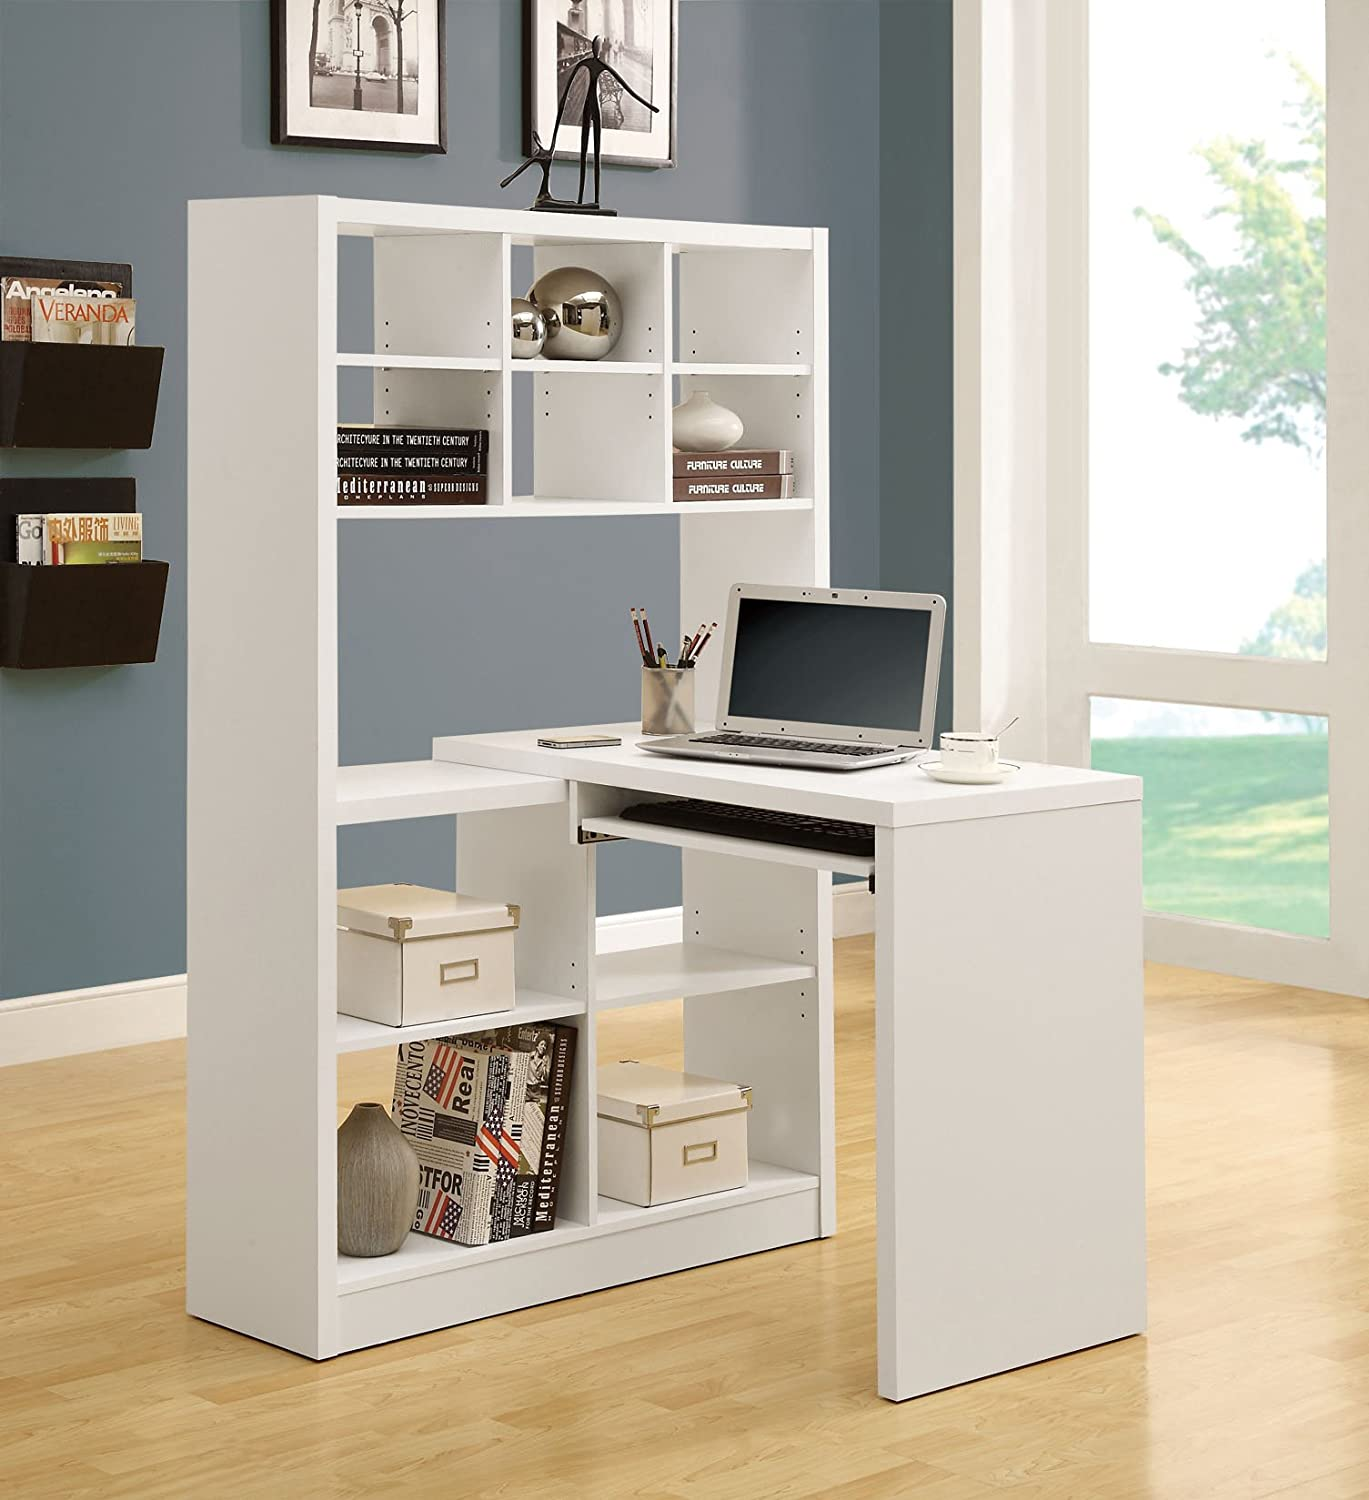 hutch made and in shelf shelving white hollow of cube monarch having facing pin left a right is with unit core shape wooden also corner combo specialties desk